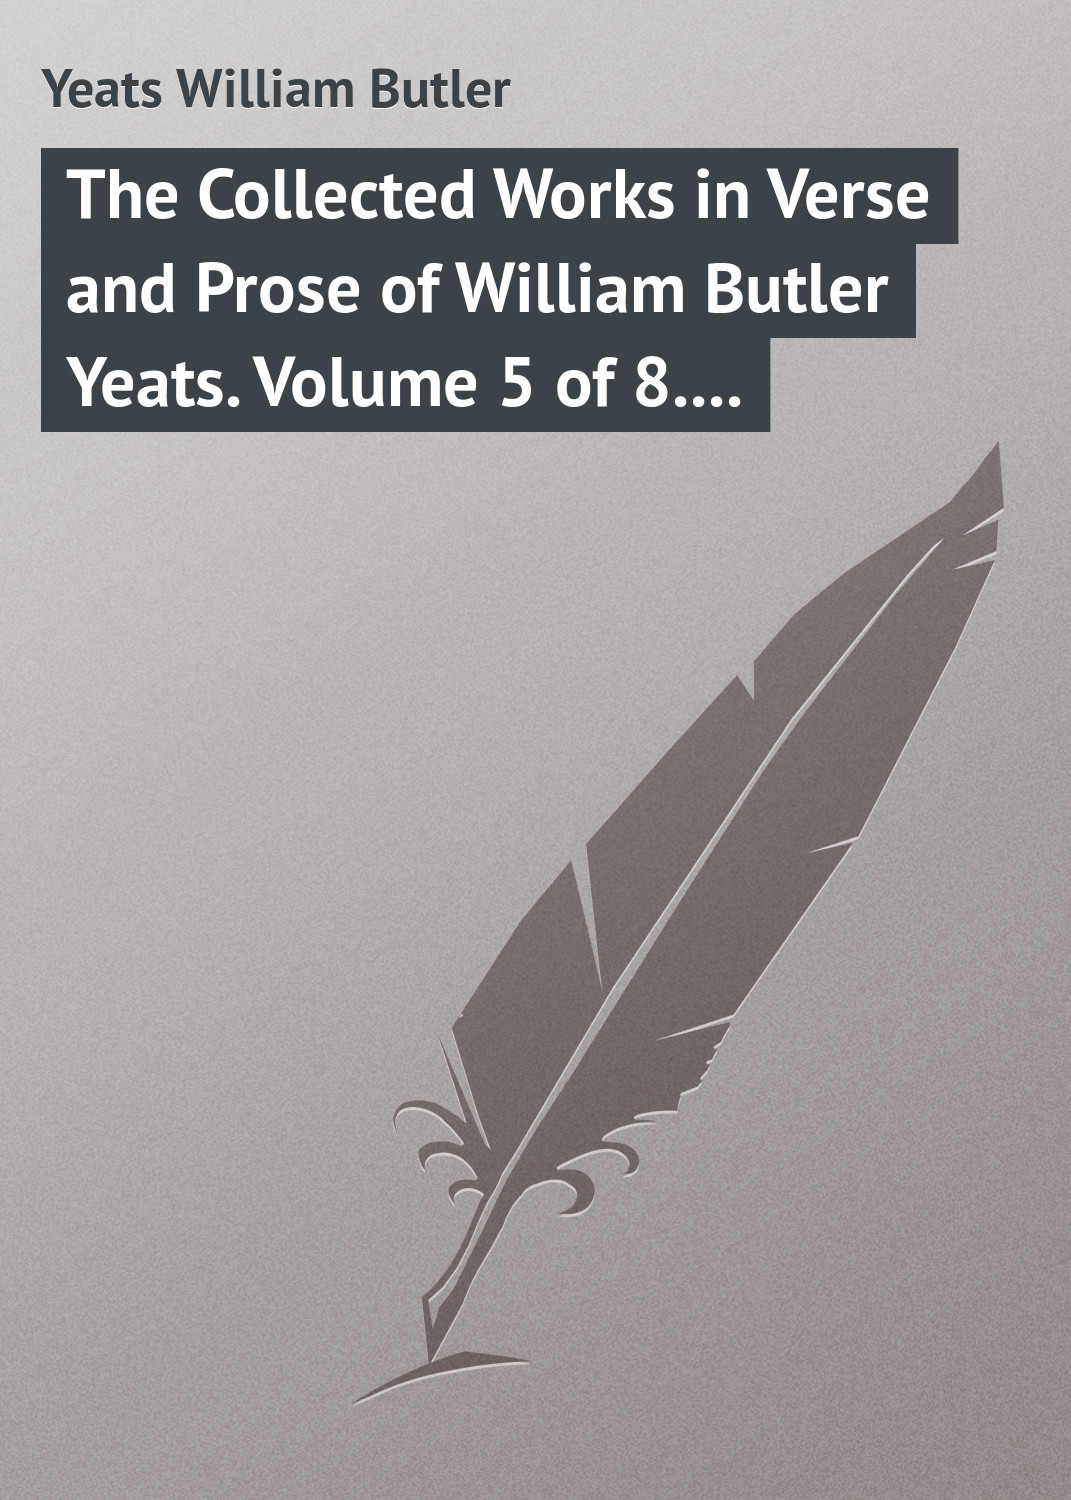 William Butler Yeats The Collected Works in Verse and Prose of William Butler Yeats. Volume 5 of 8. The Celtic Twilight and Stories of Red Hanrahan william ellery channing the works of william e channing volumes 5 6